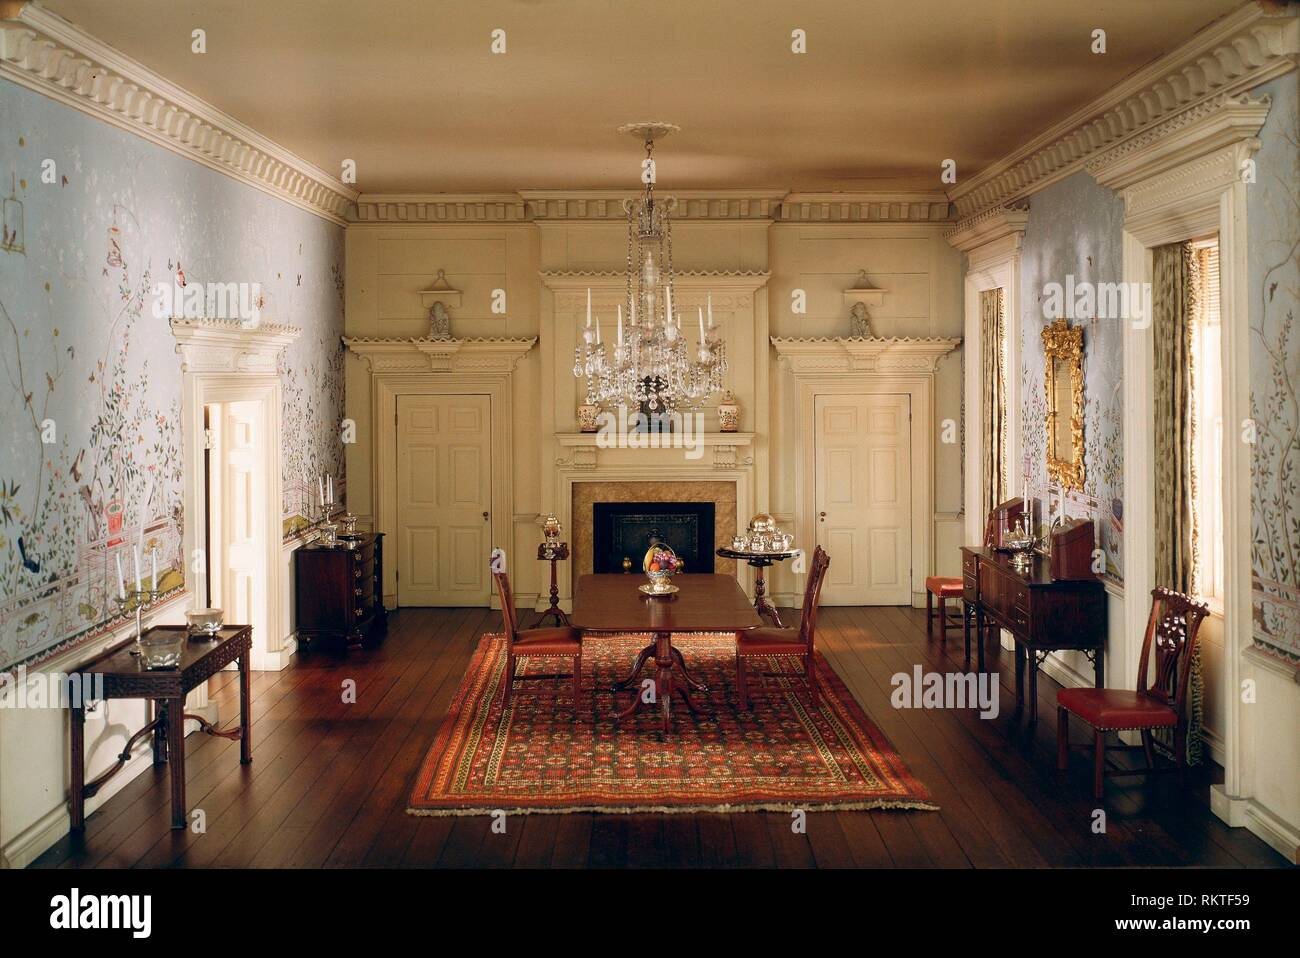 Rooms: 13 8 1940 Stock Photos & 13 8 1940 Stock Images